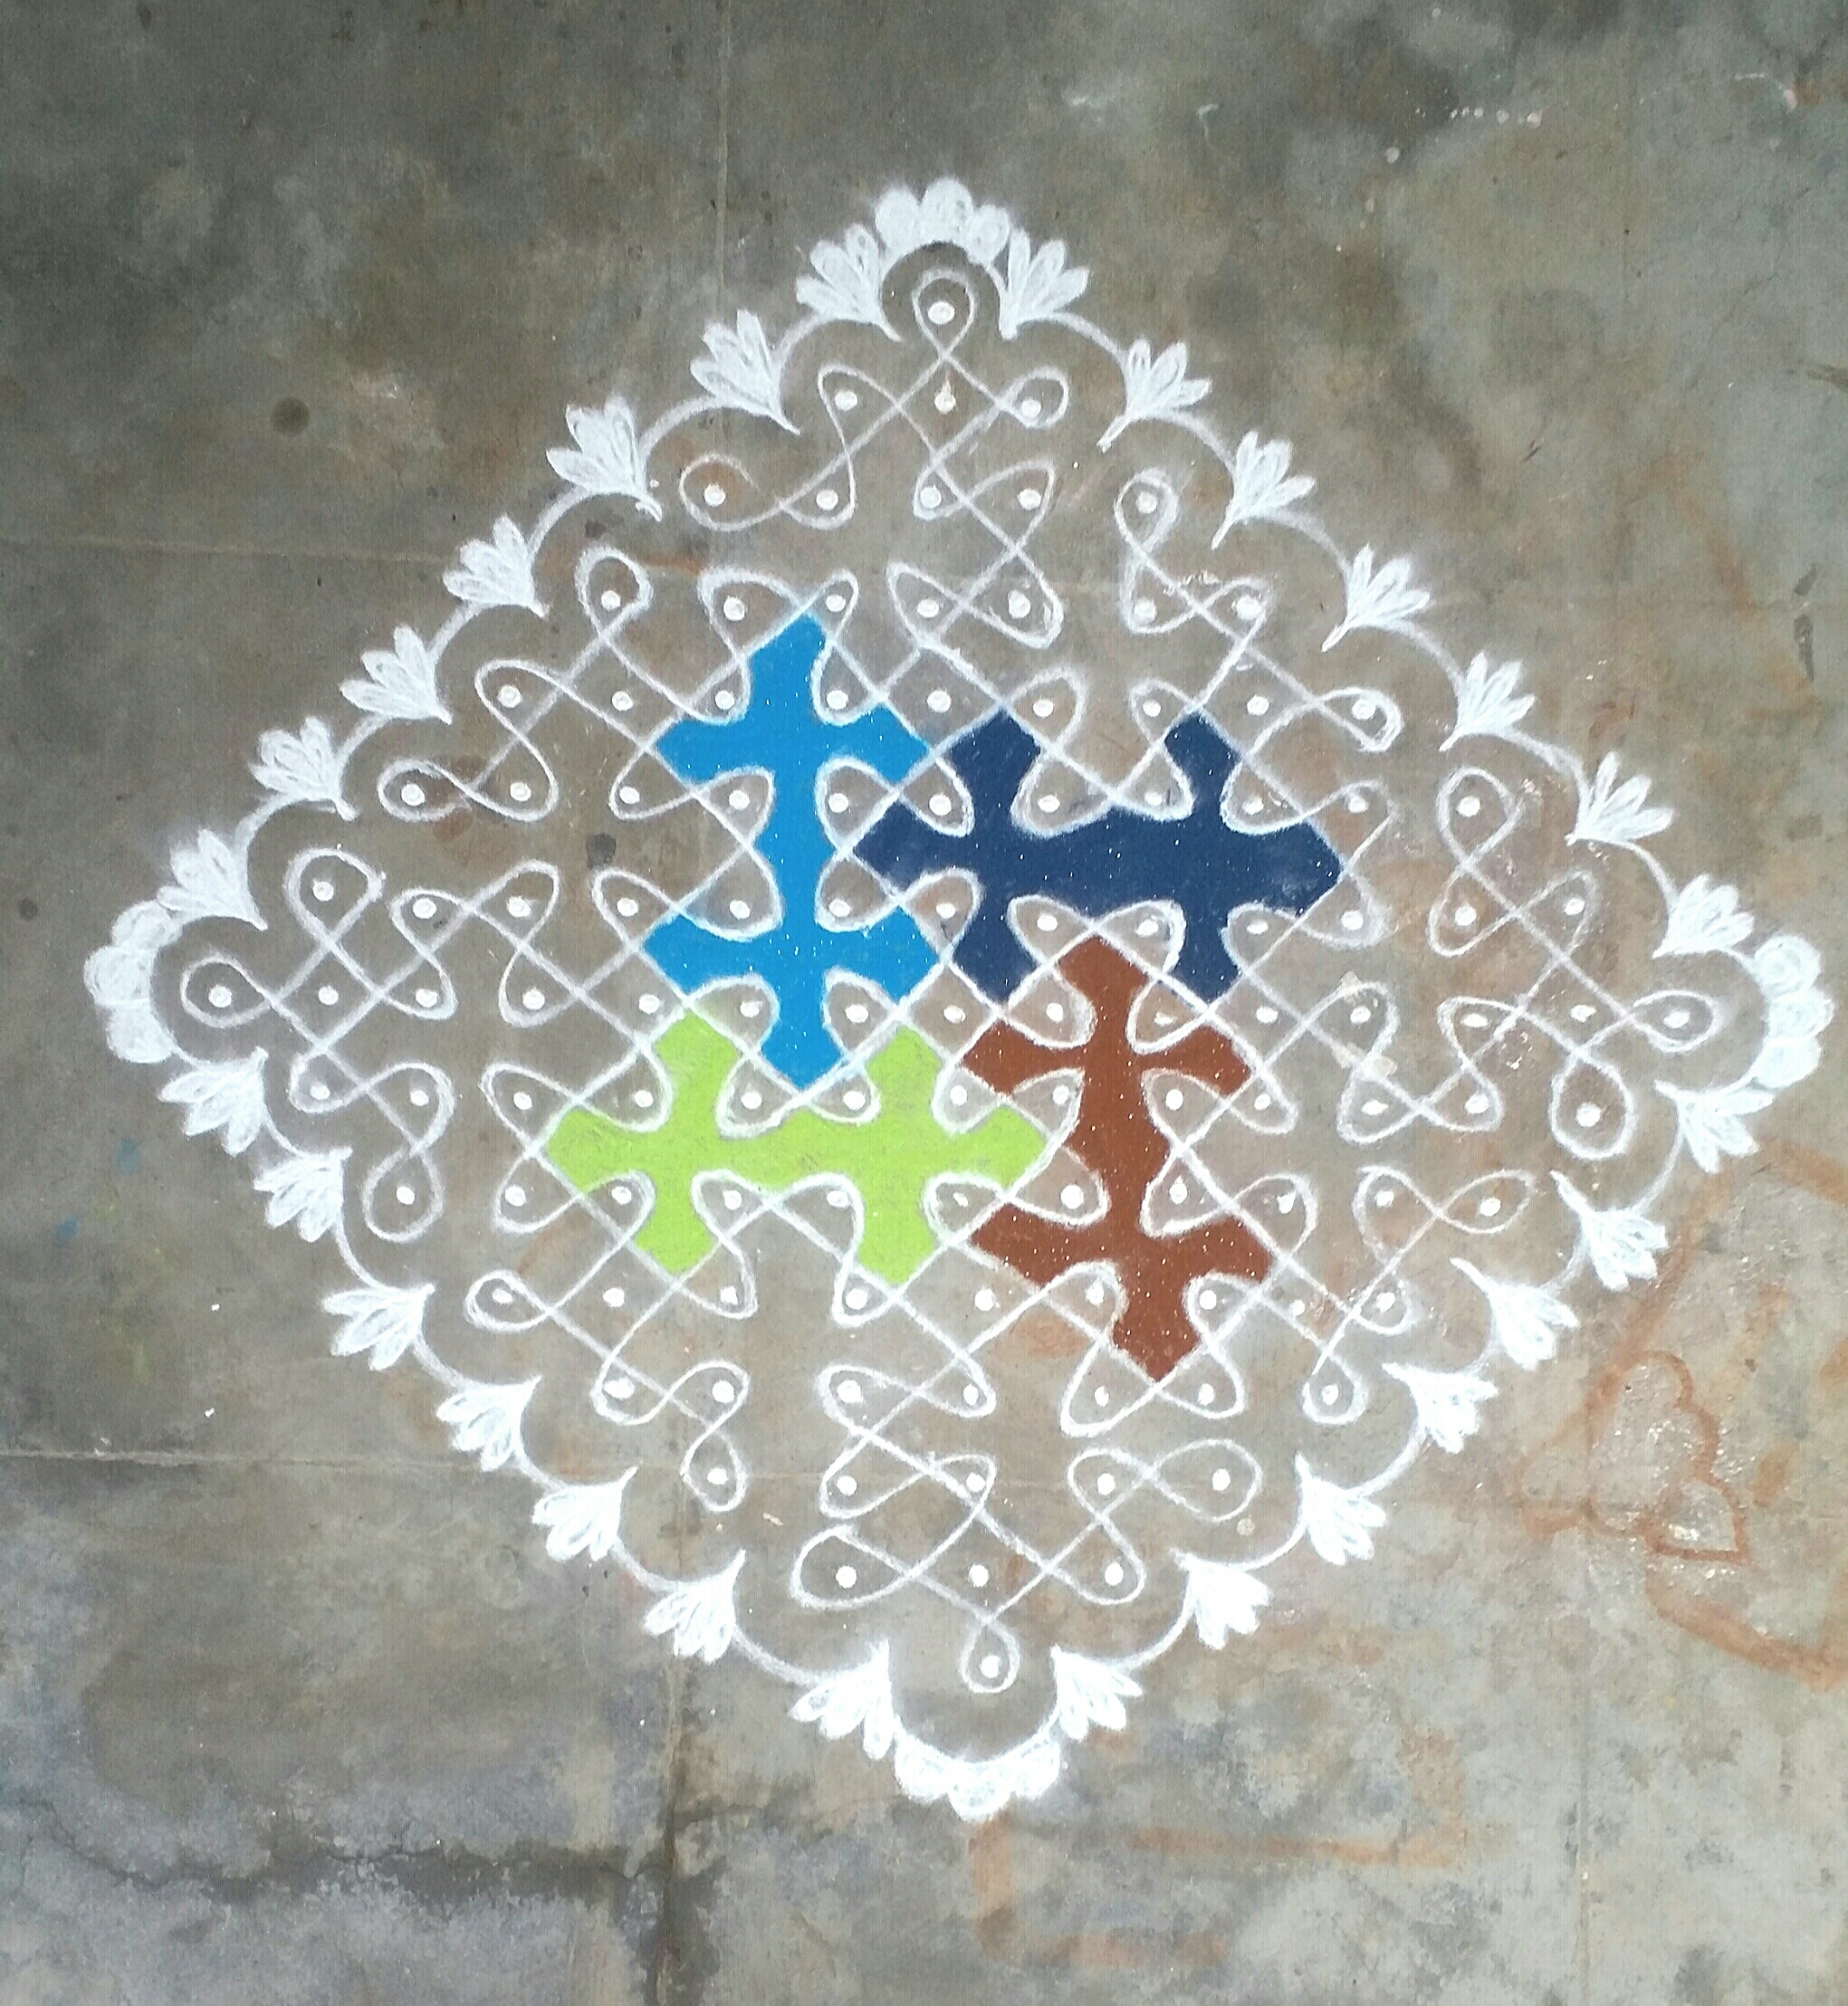 Chikku center colored Kolam || Contest Kolam with 15 dots